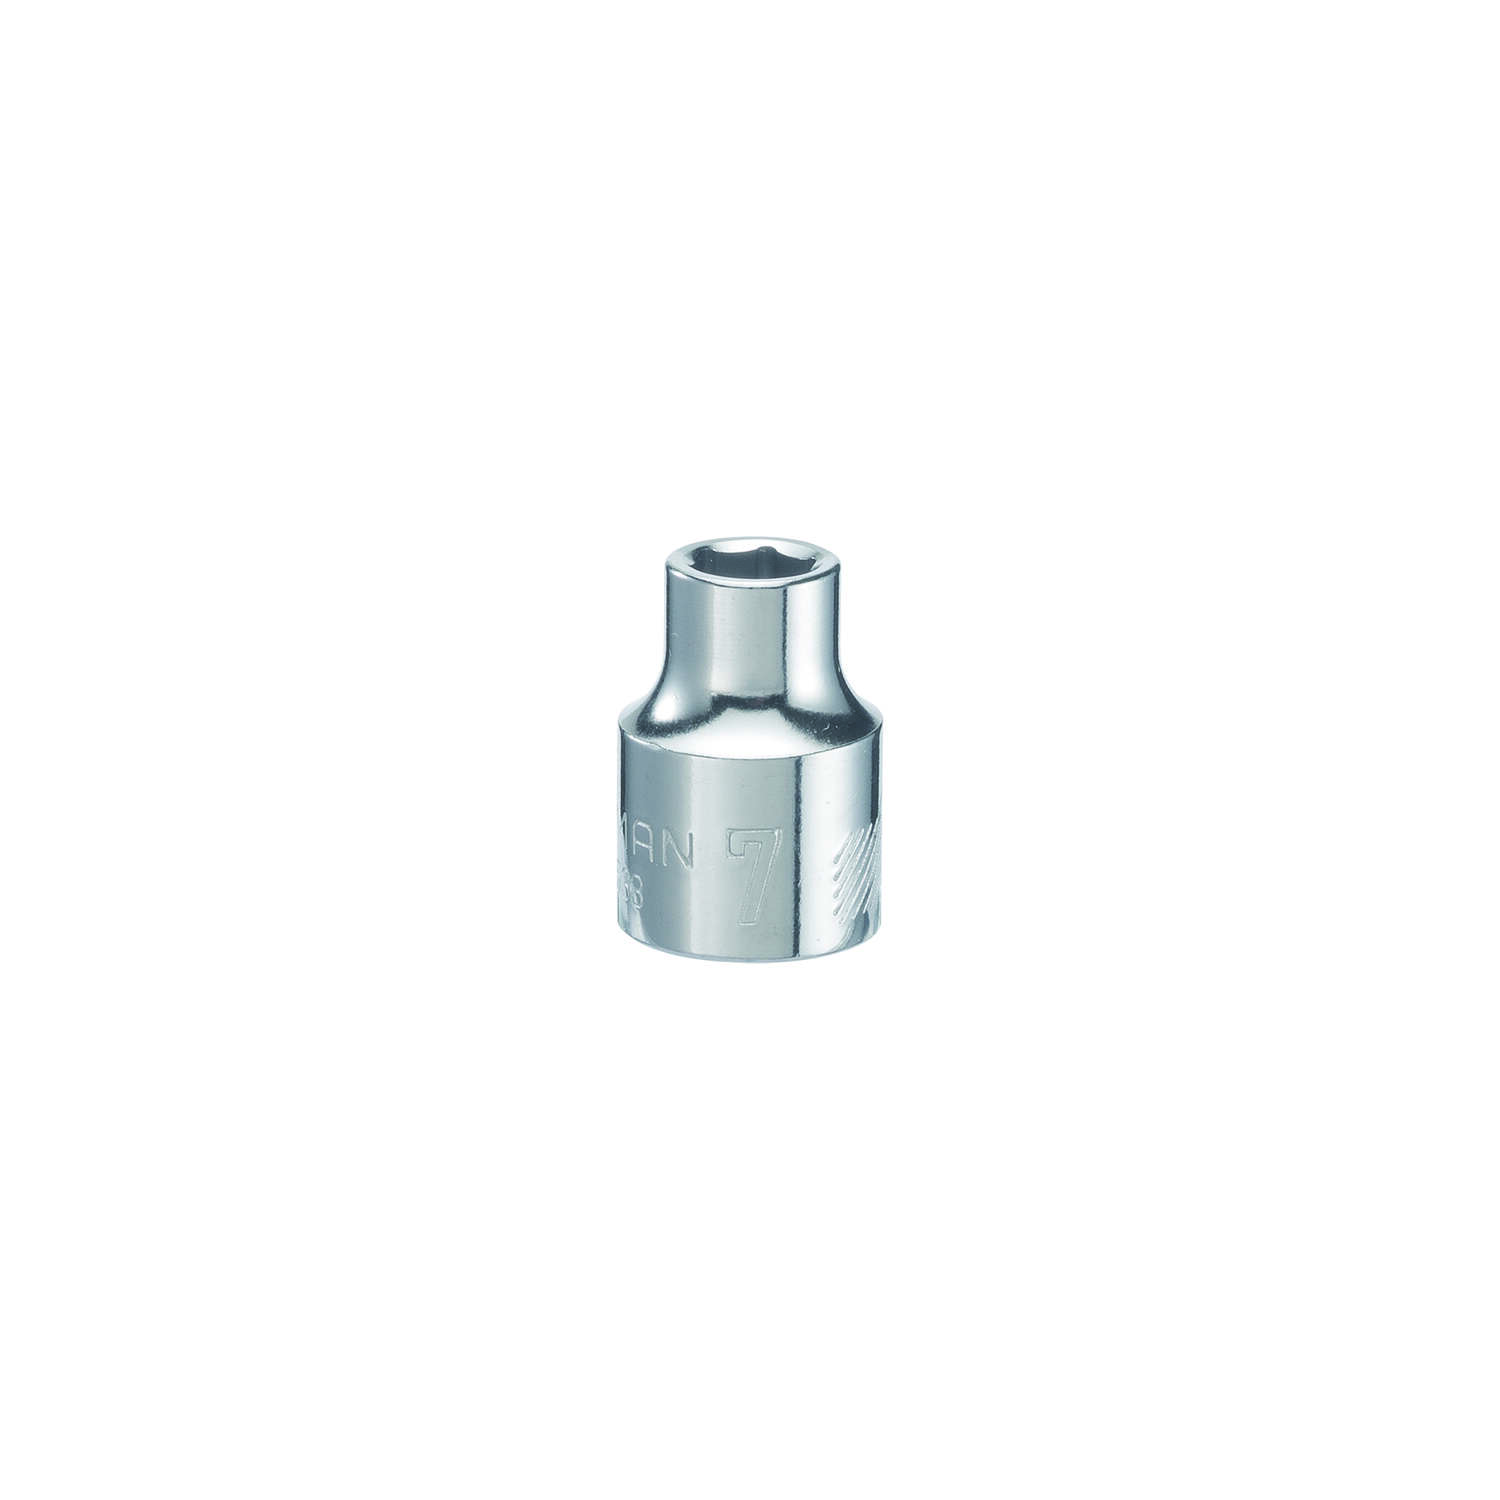 Craftsman  7 mm  x 3/8 in. drive  Metric  6 Point Shallow  Shallow Socket  1 pc.